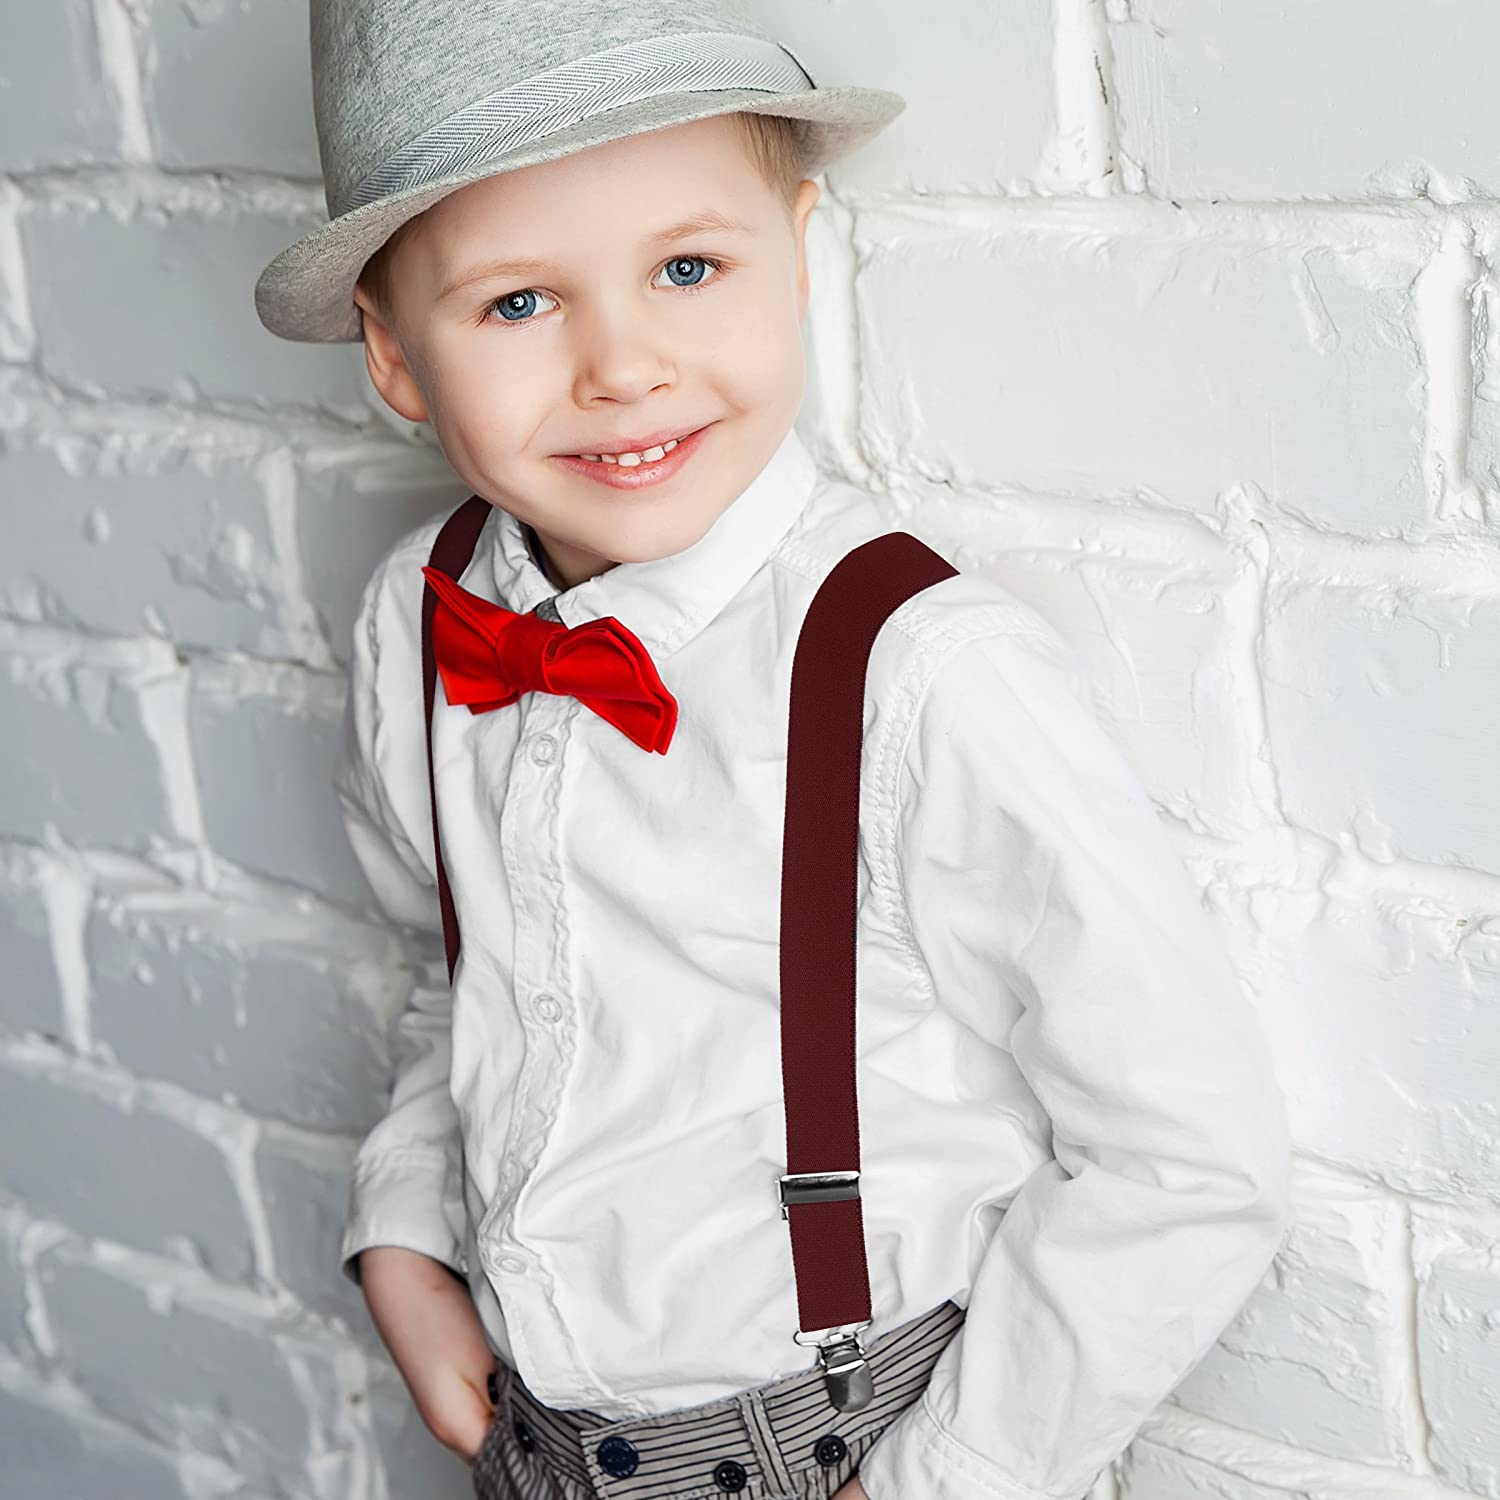 Rob Riverdale Tuxedo Suspenders for Kids Boys and Baby Elastic Fully Adjustable 126